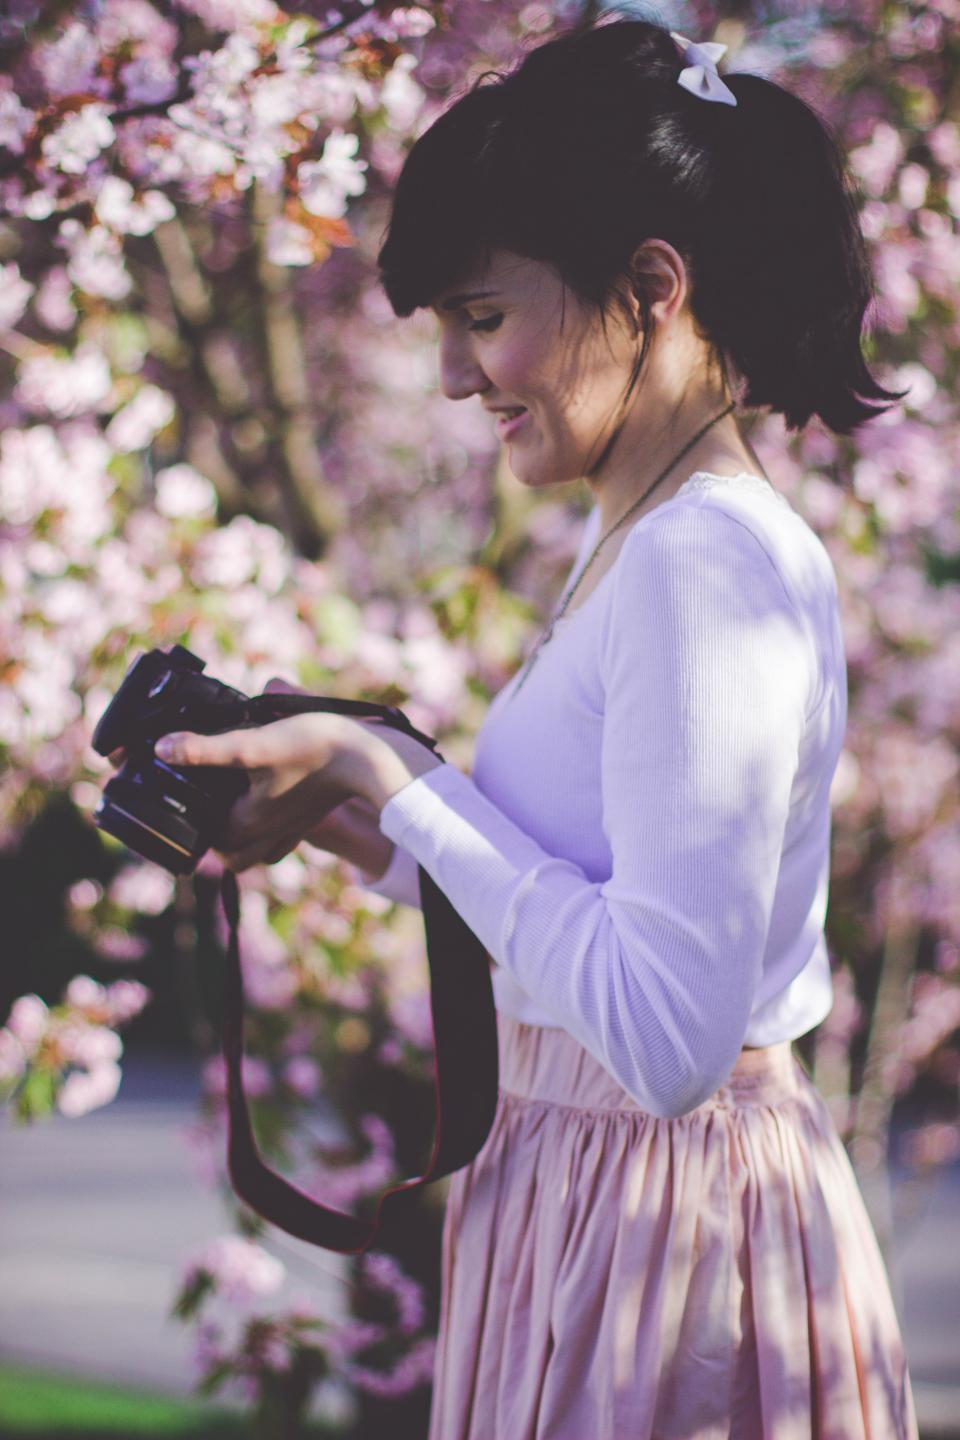 people girl woman alone fashion clothing nature plant outdoor flowers petal bokeh blur camera photographer smile happy travel